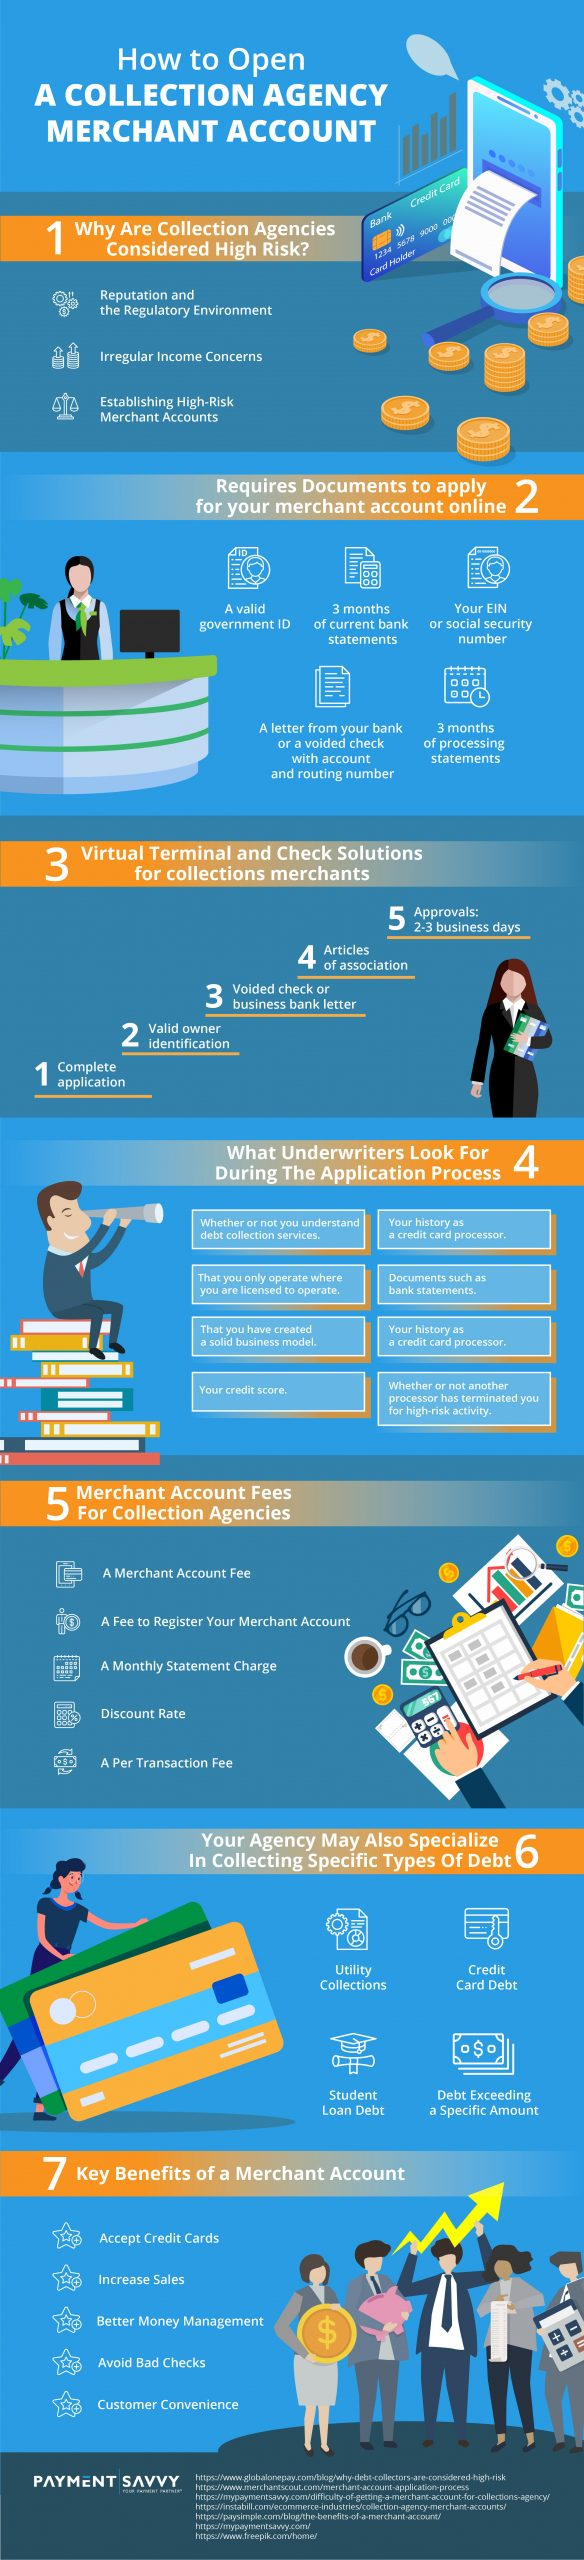 How to Create a Collection Agency Merchant Account [Infographic]